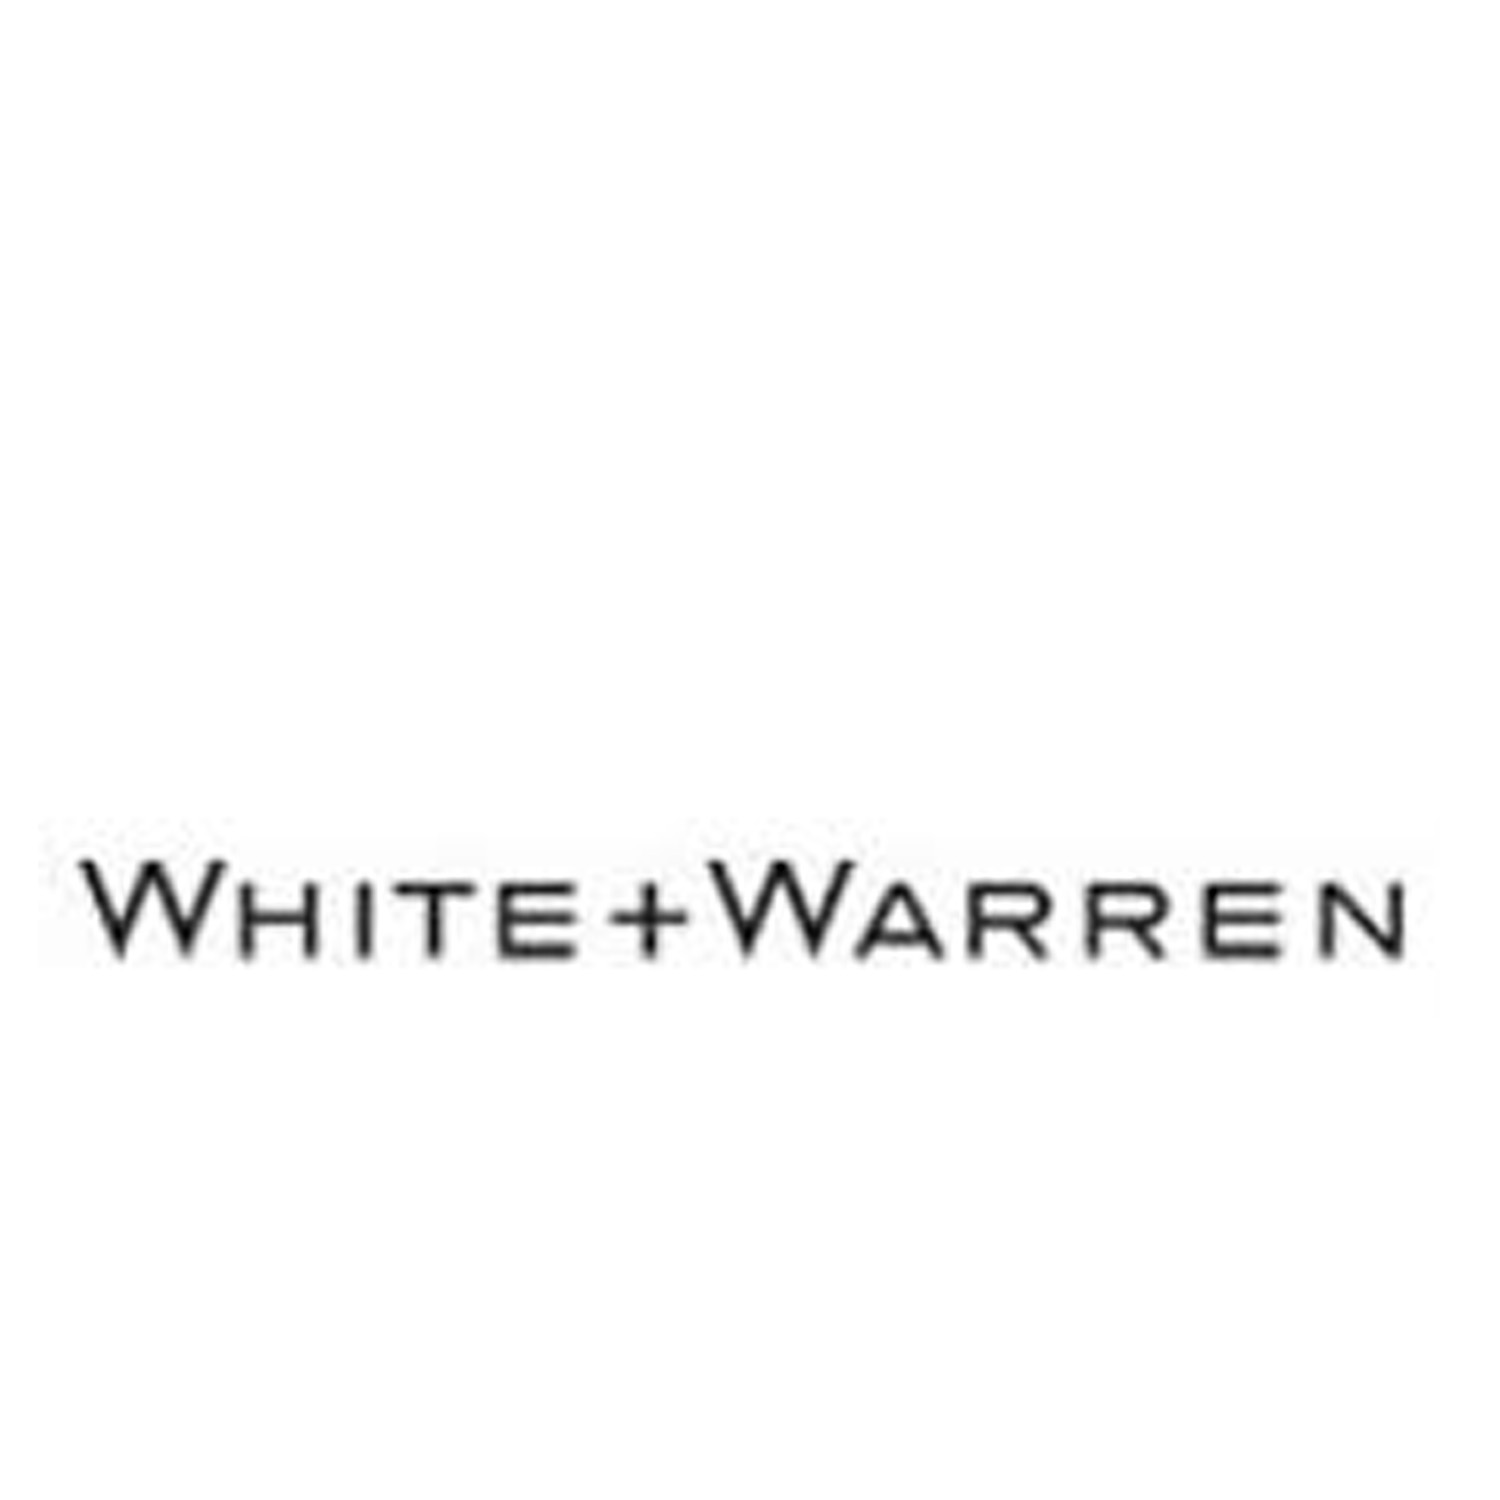 WHITE + WARREN  Pushing the boundaries of  near -unattainable luxurious knits by blending the innovation with the classic to create an impressive range of rich cashmere silhouettes. (NYC)